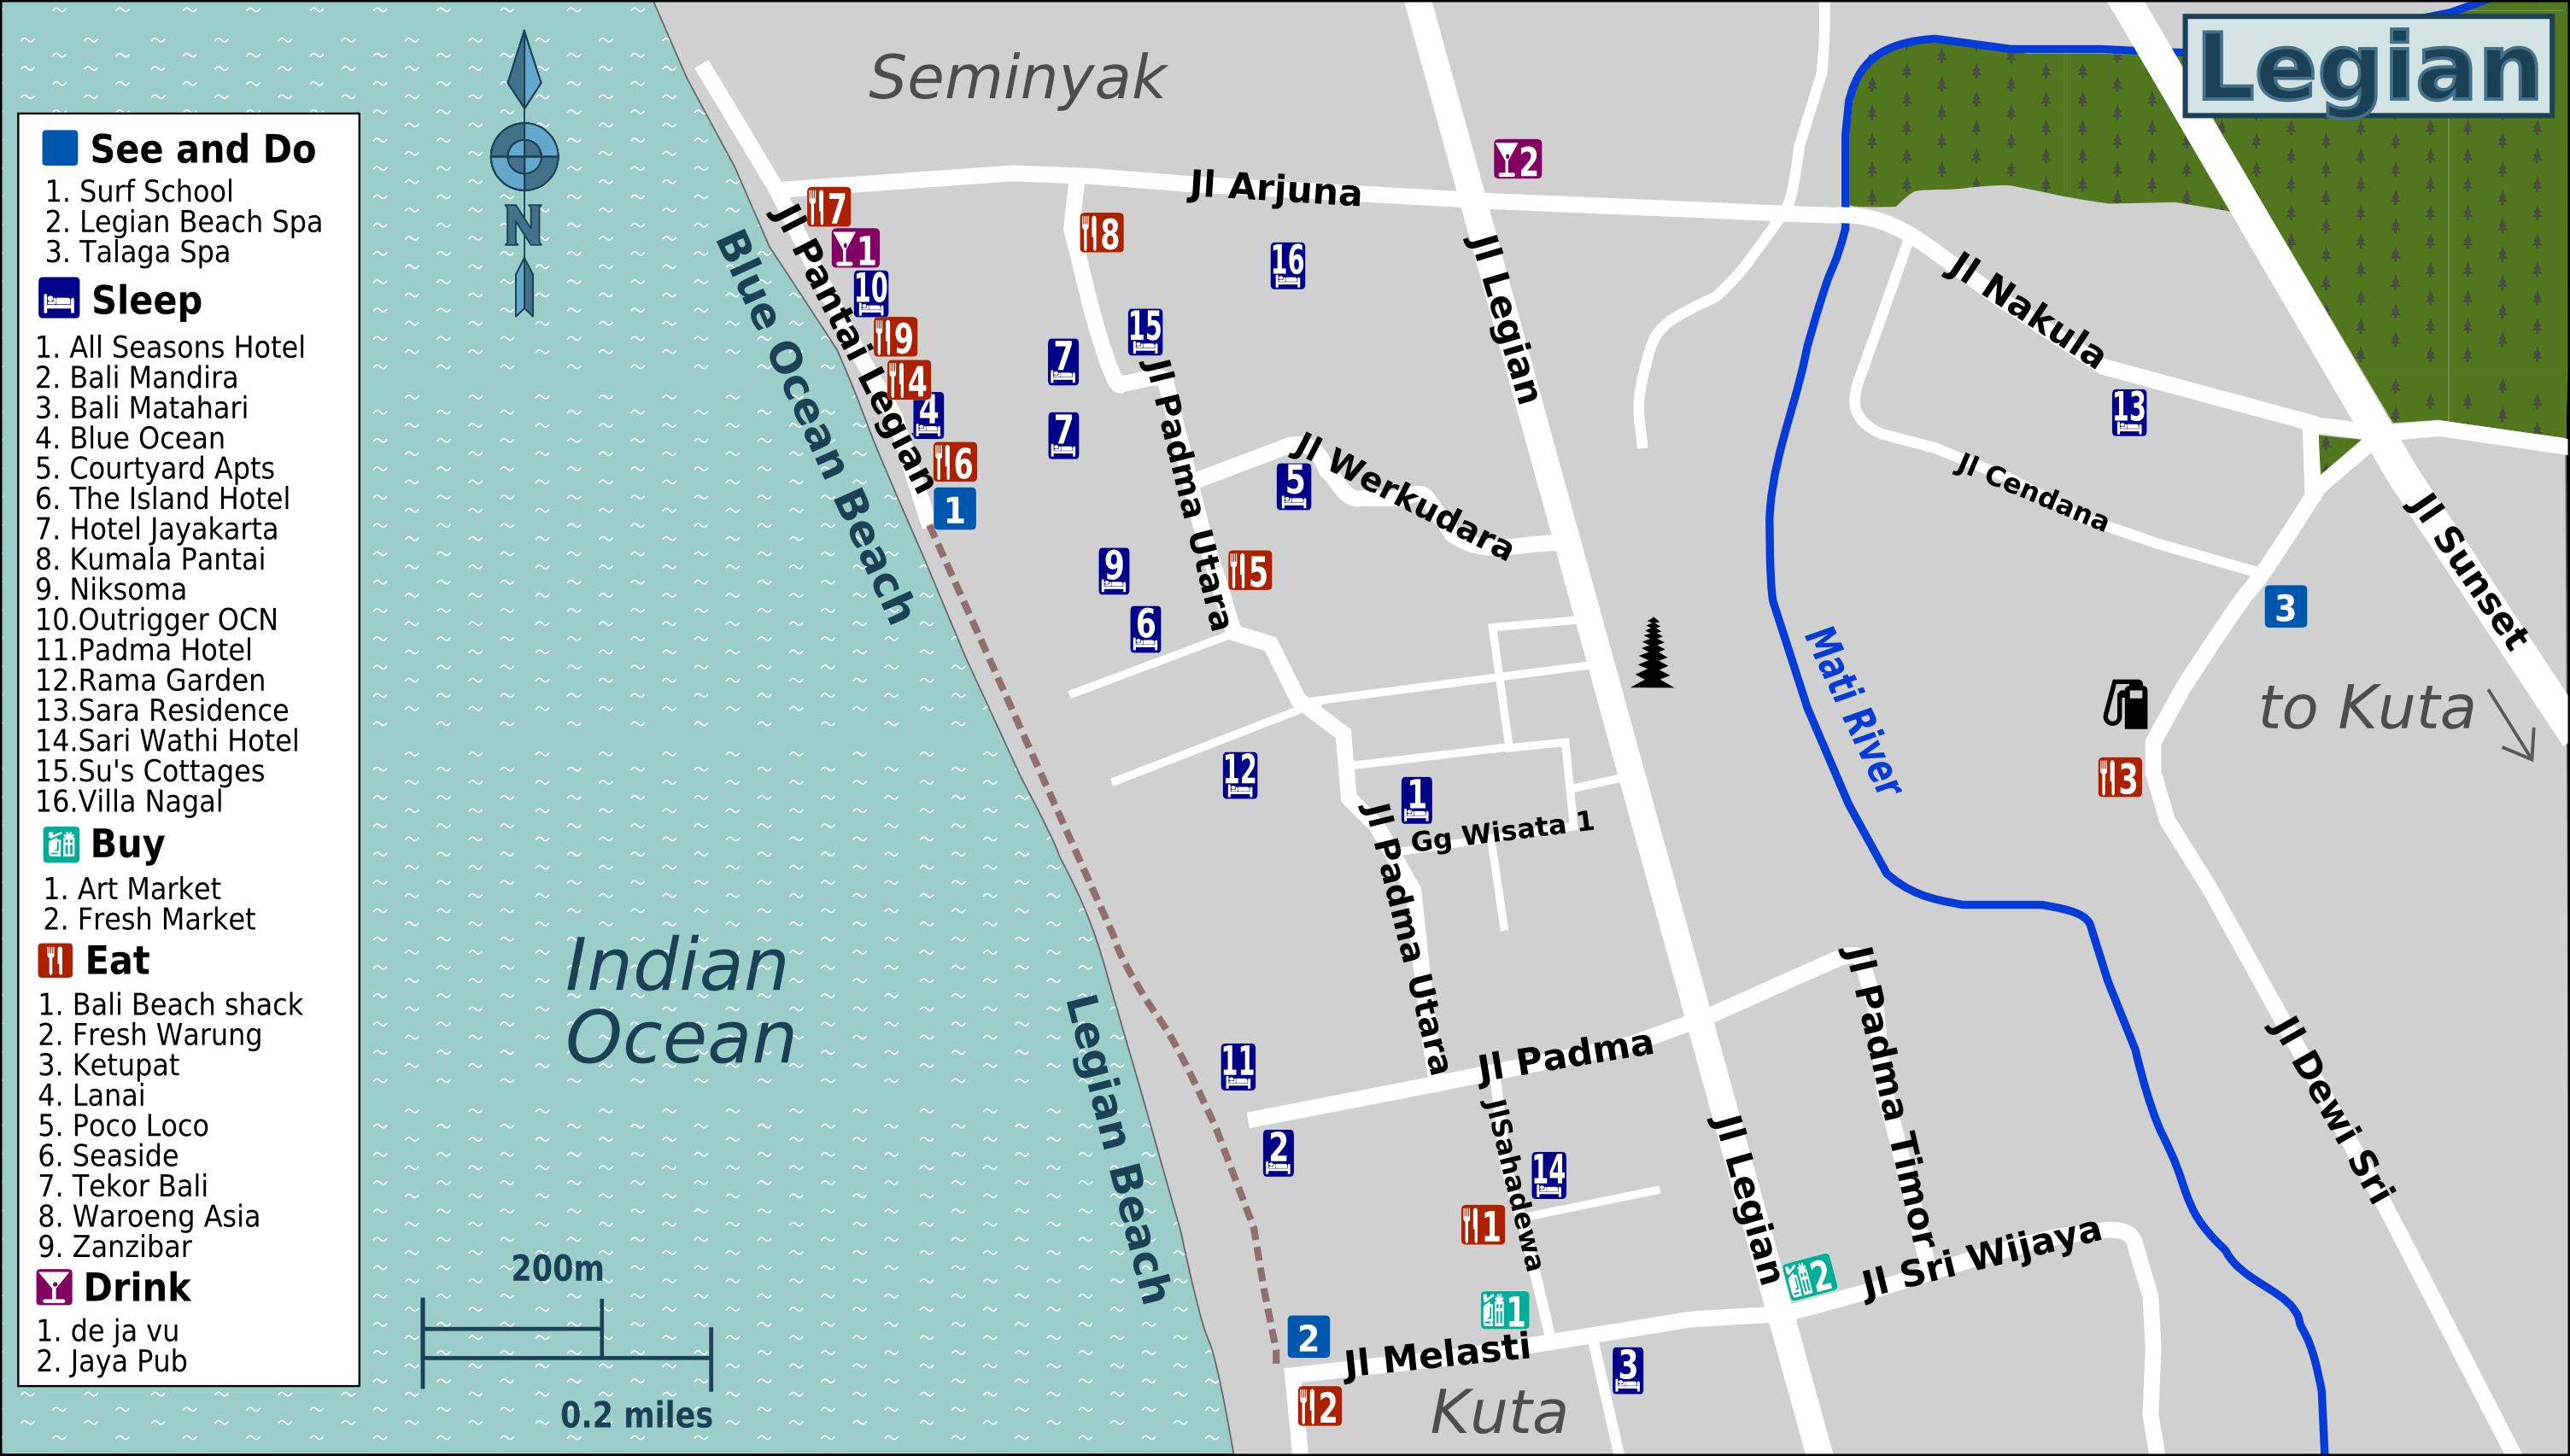 Large Scale Map File:Bali Legian Large Scale Map.png   Wikimedia Commons Large Scale Map